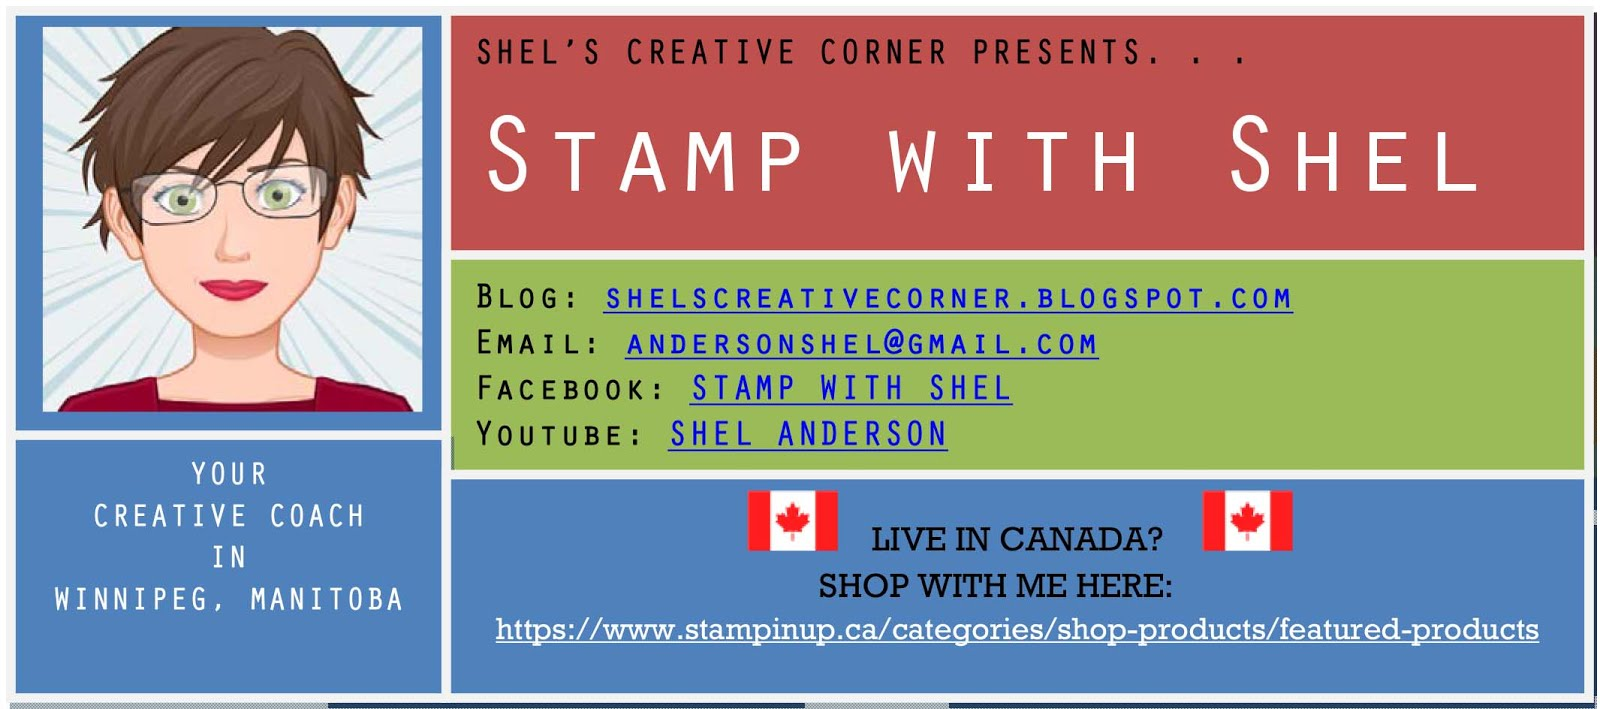 STAMP WITH SHEL  -  SHEL'S CREATIVE CORNER  -  EMAIL:  ANDERSONSHEL@GMAIL.COM